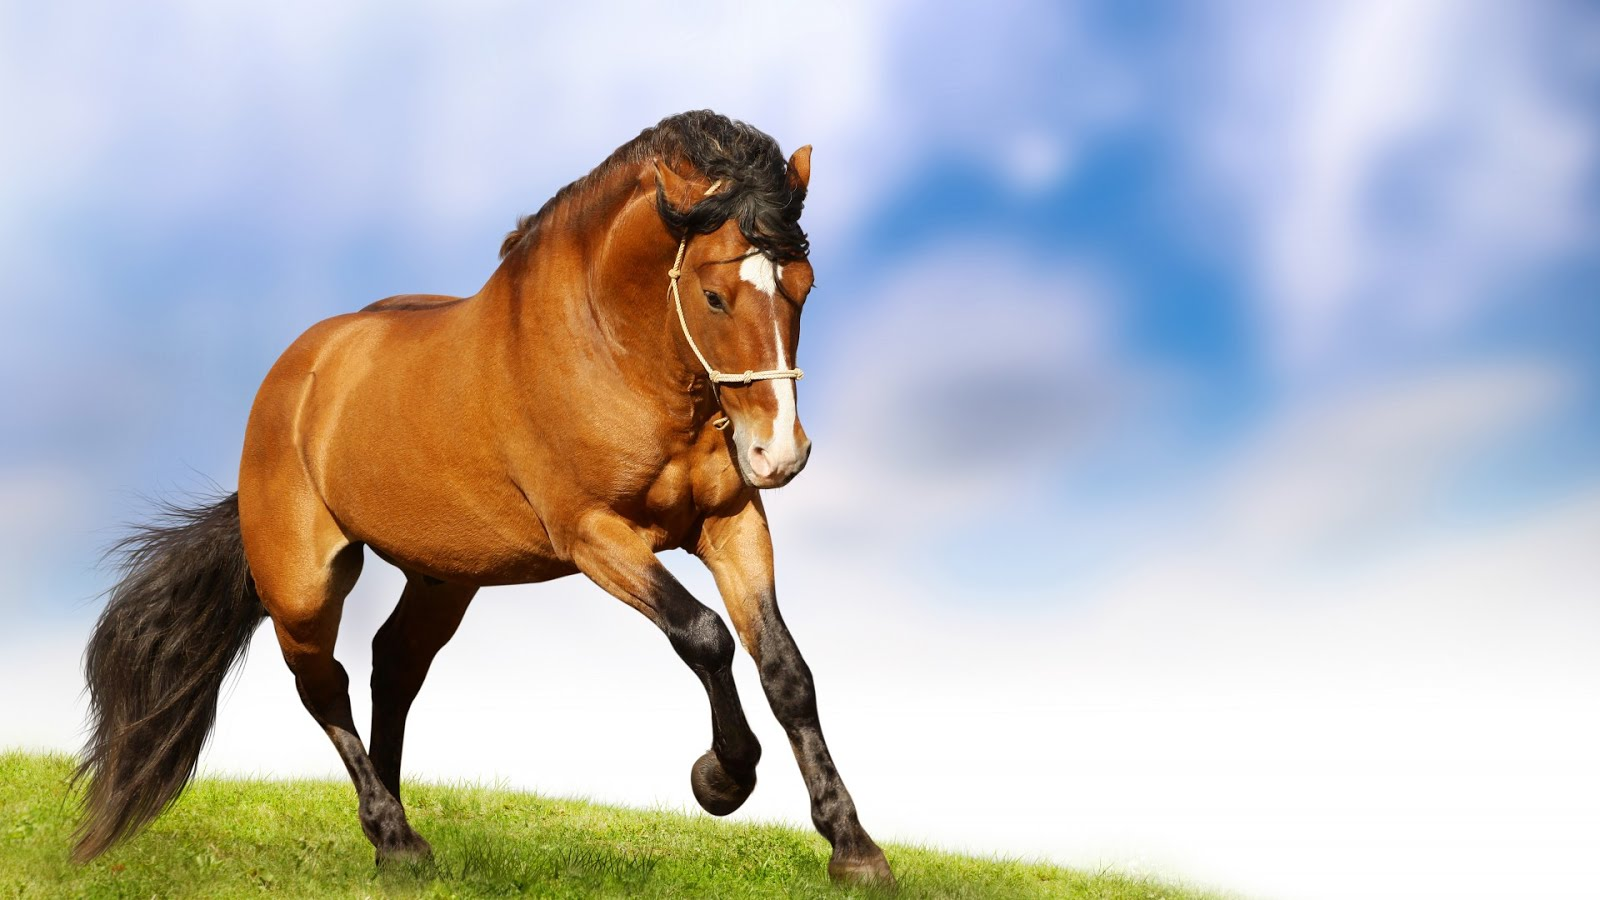 Best Horse Animated Images